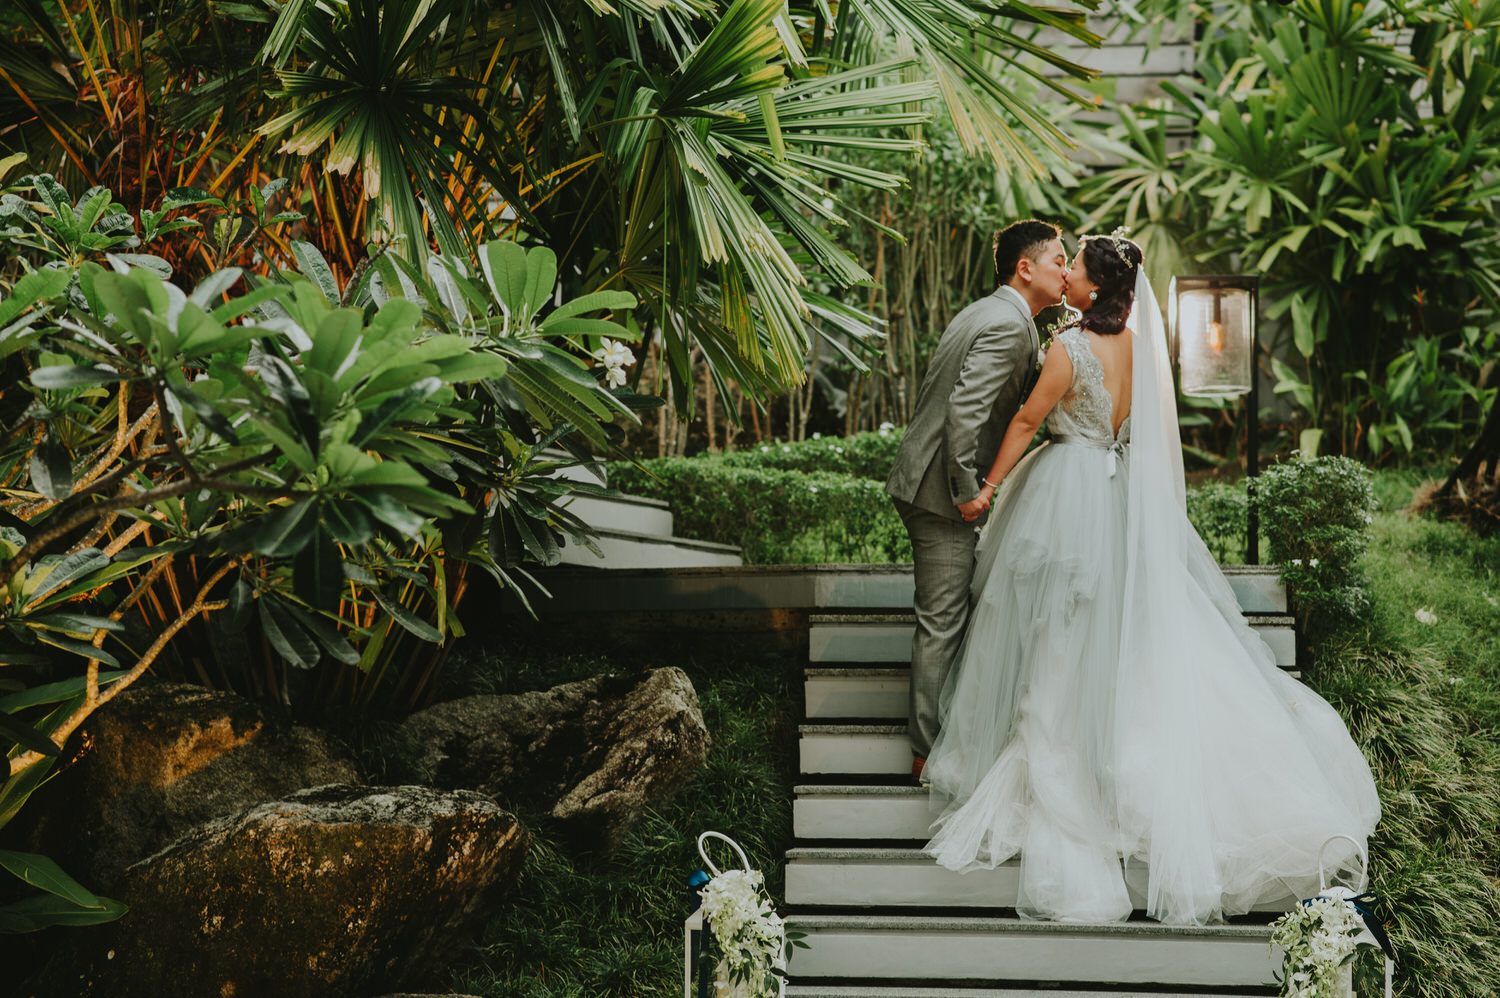 phuket wedding-diktatphotography-alex&andy wedding-108